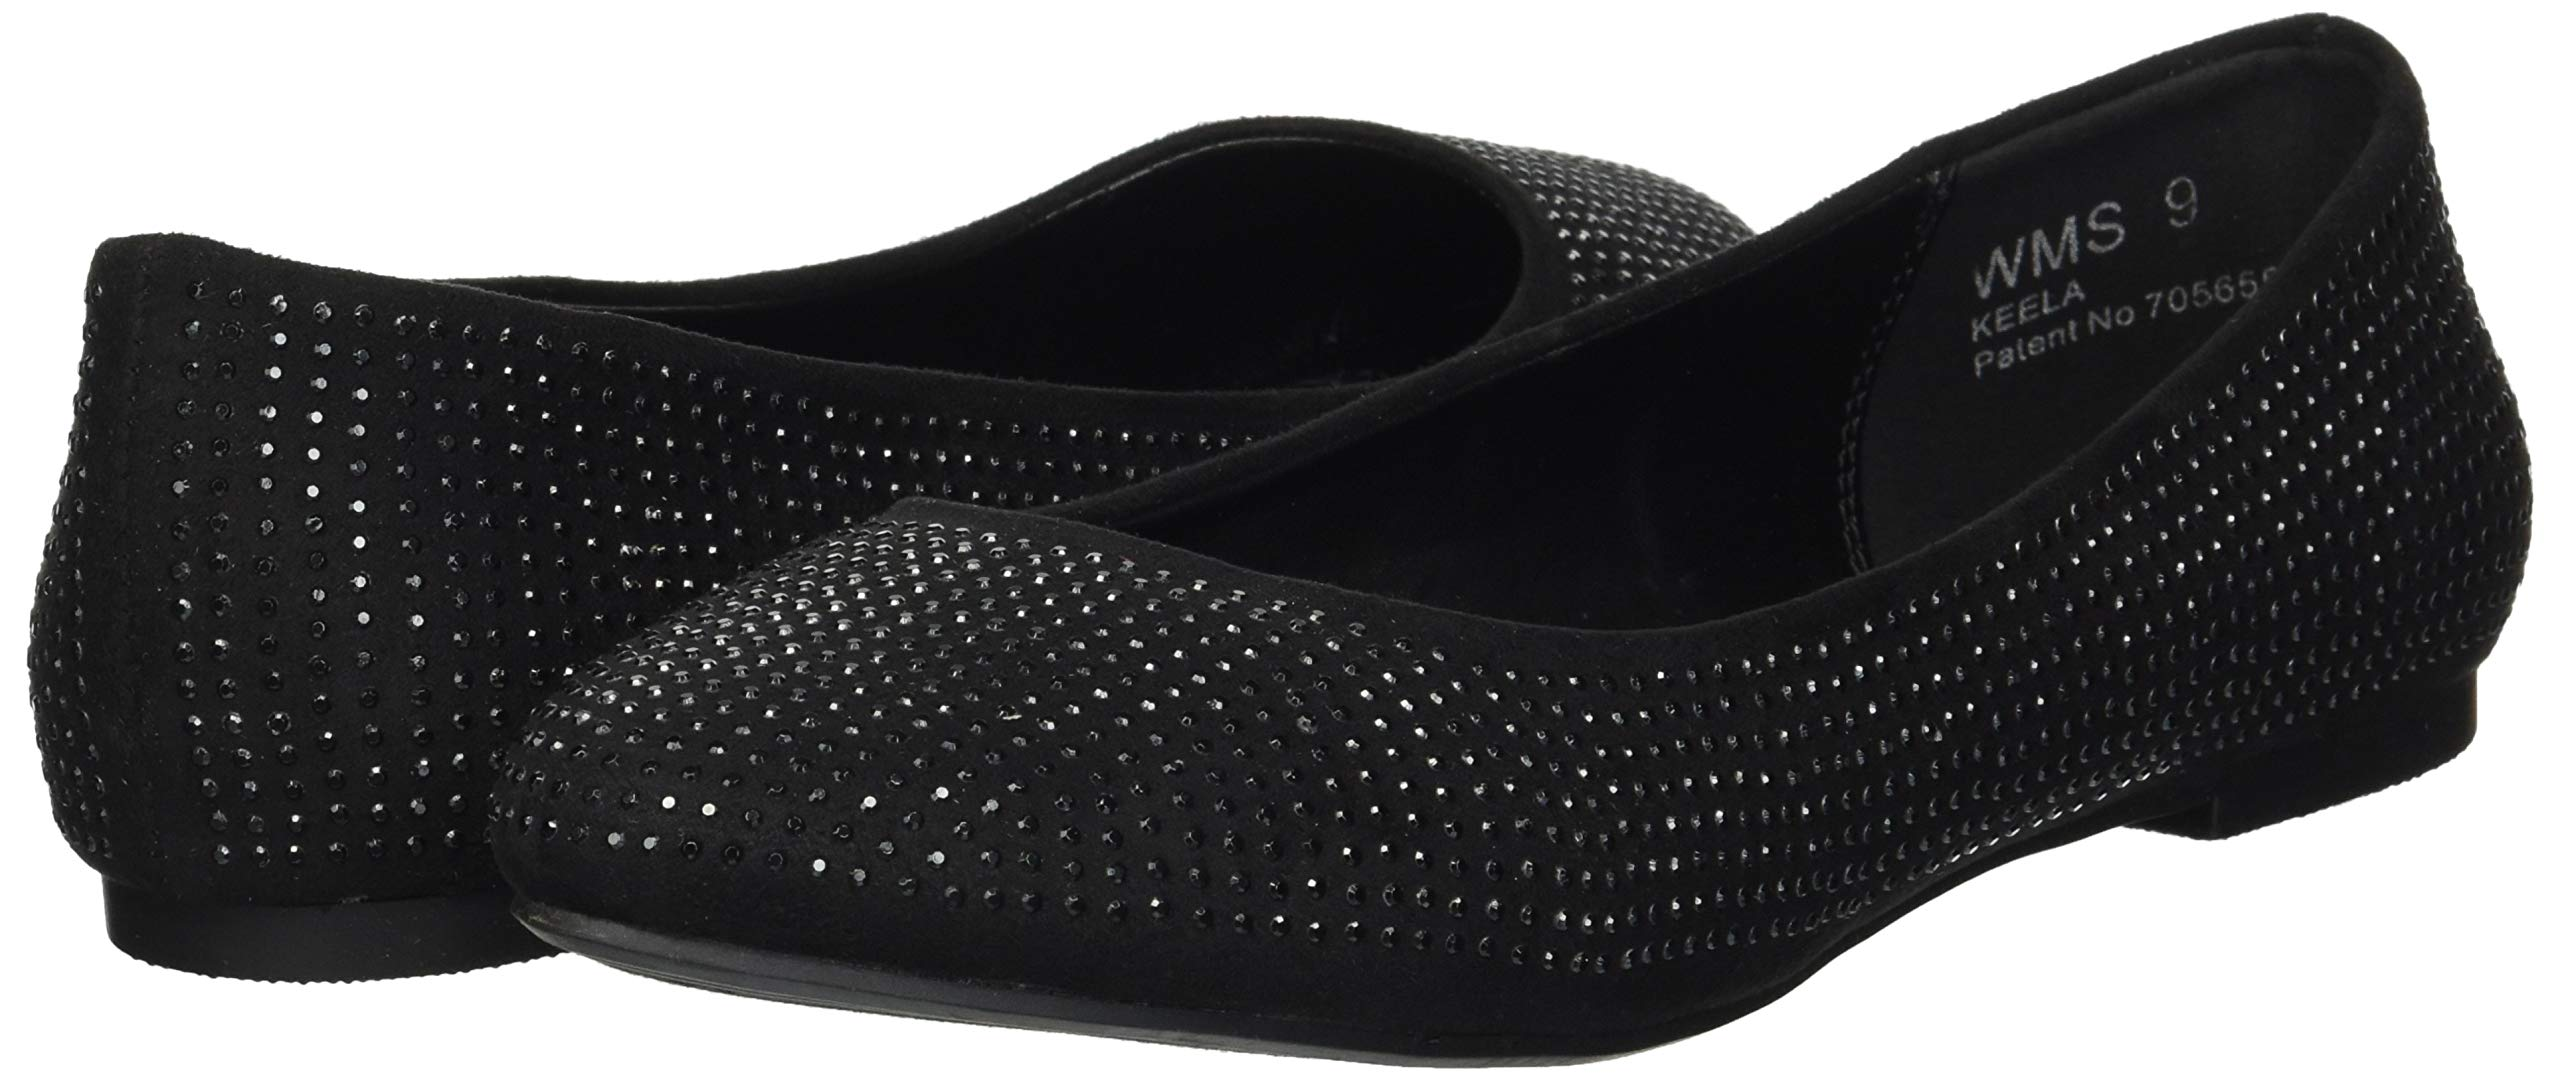 Report Women's Keela Ballet Flat, Black Fox Suede, 9 M US by Report (Image #5)